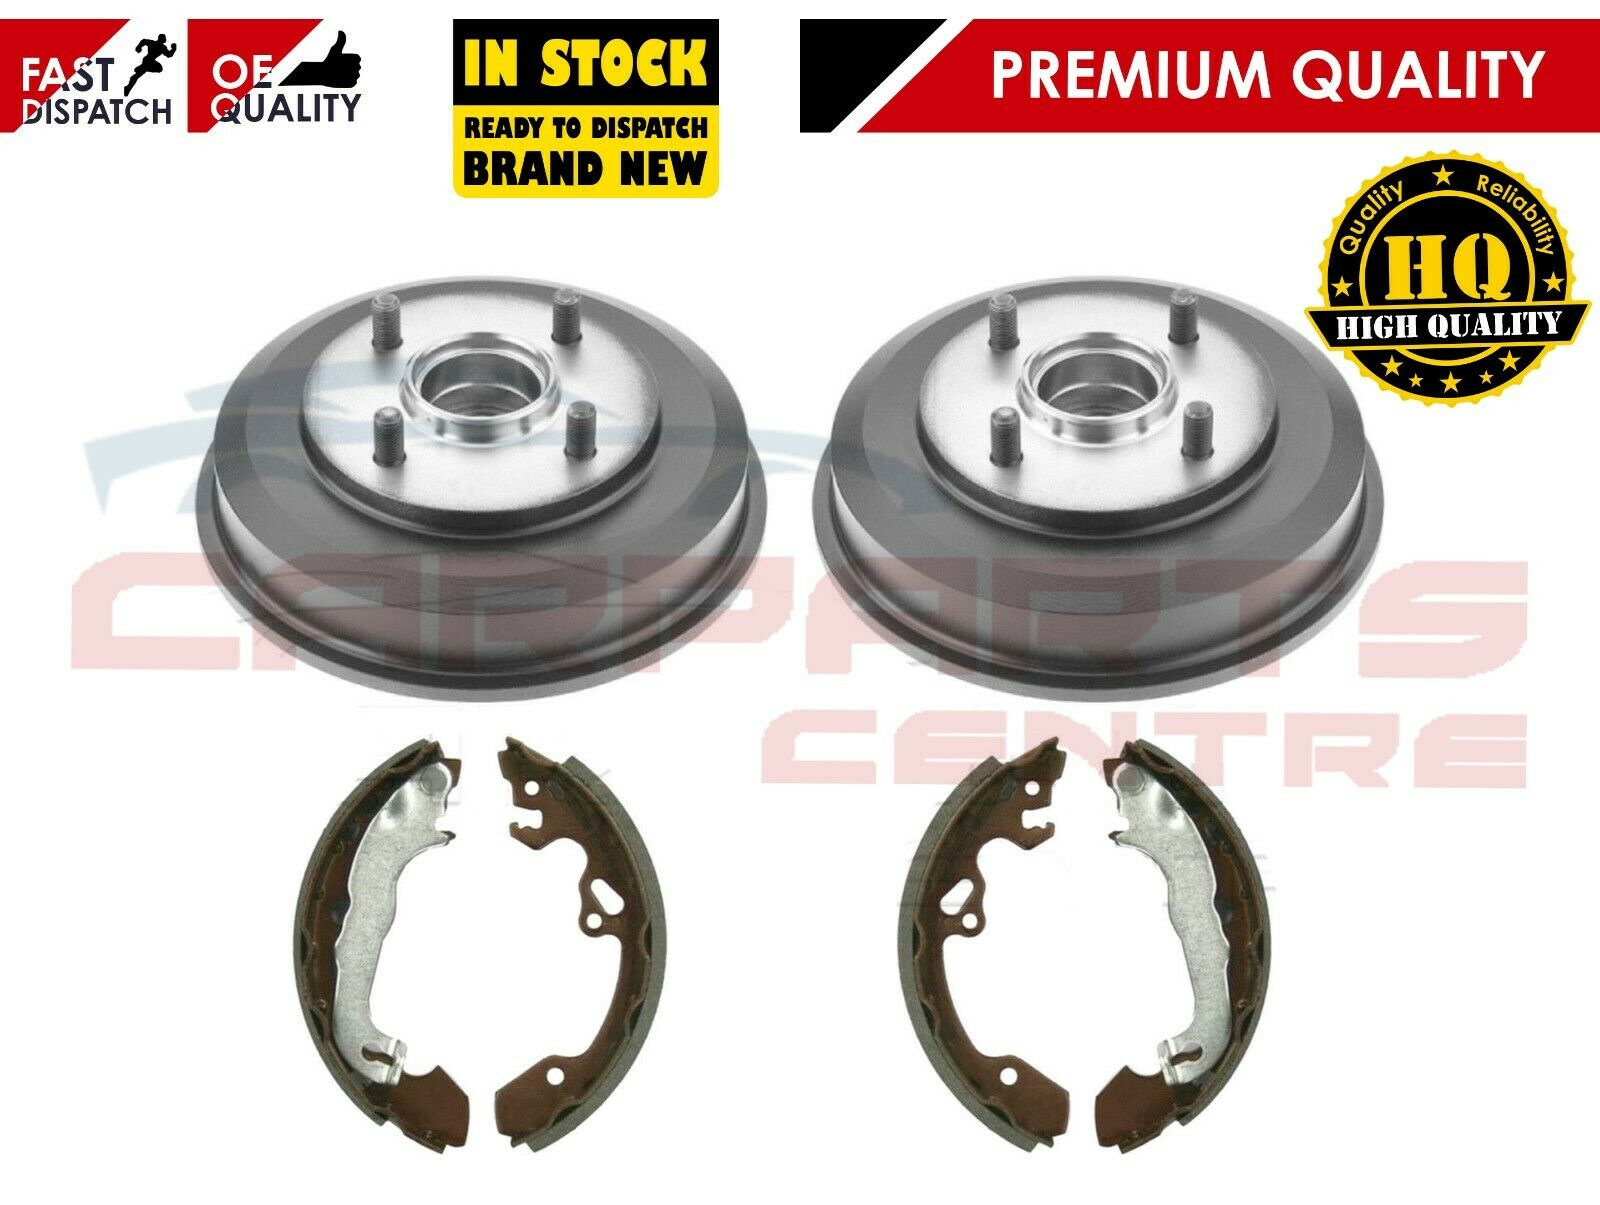 FORD FOCUS MK1 98-04 TWO REAR BRAKE DRUMS WITH FITTED BEARINGS AND 4 BRAKE SHOES